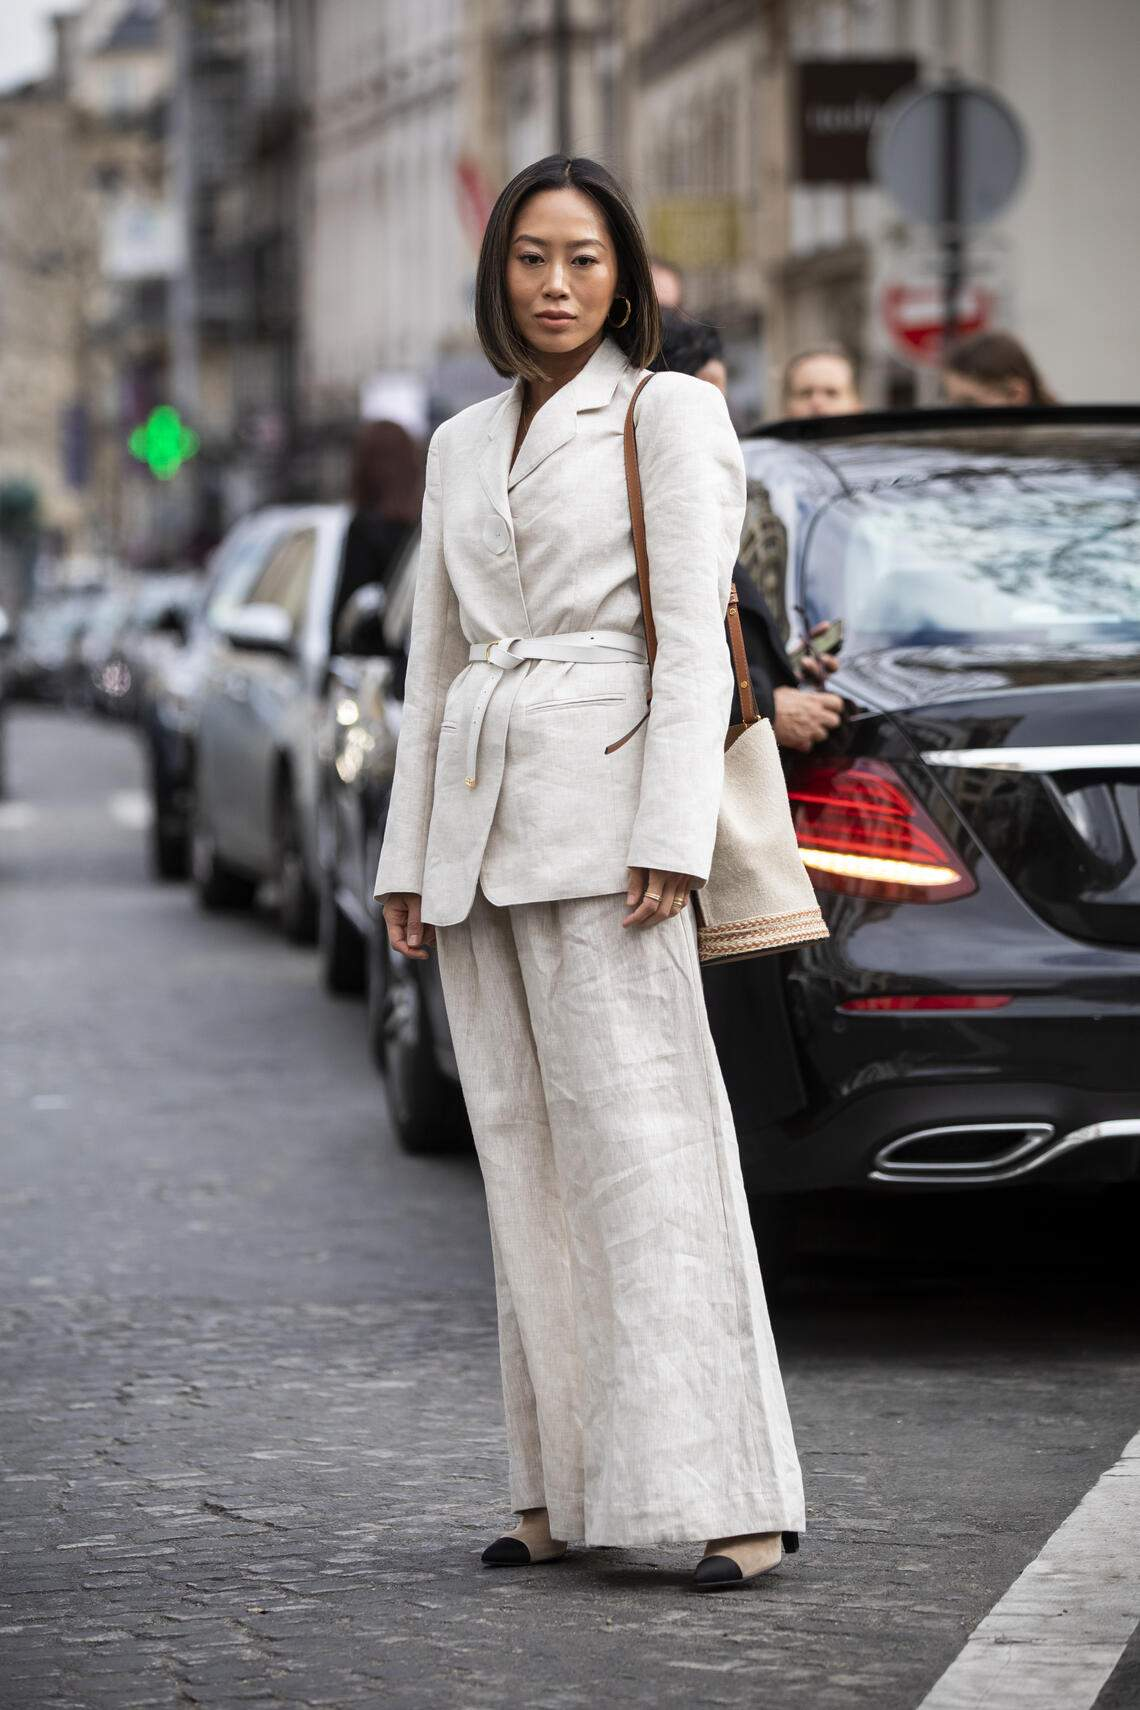 PARIS, FRANCE - MARCH 02: Aimee Song, wearing a cream suit and black heels, is seen outside Elie Saab on Day 6 Paris Fashion Week Autumn/Winter 2019/20 on March 2, 2019 in Paris, France. (Photo by Claudio Lavenia/Getty Images)